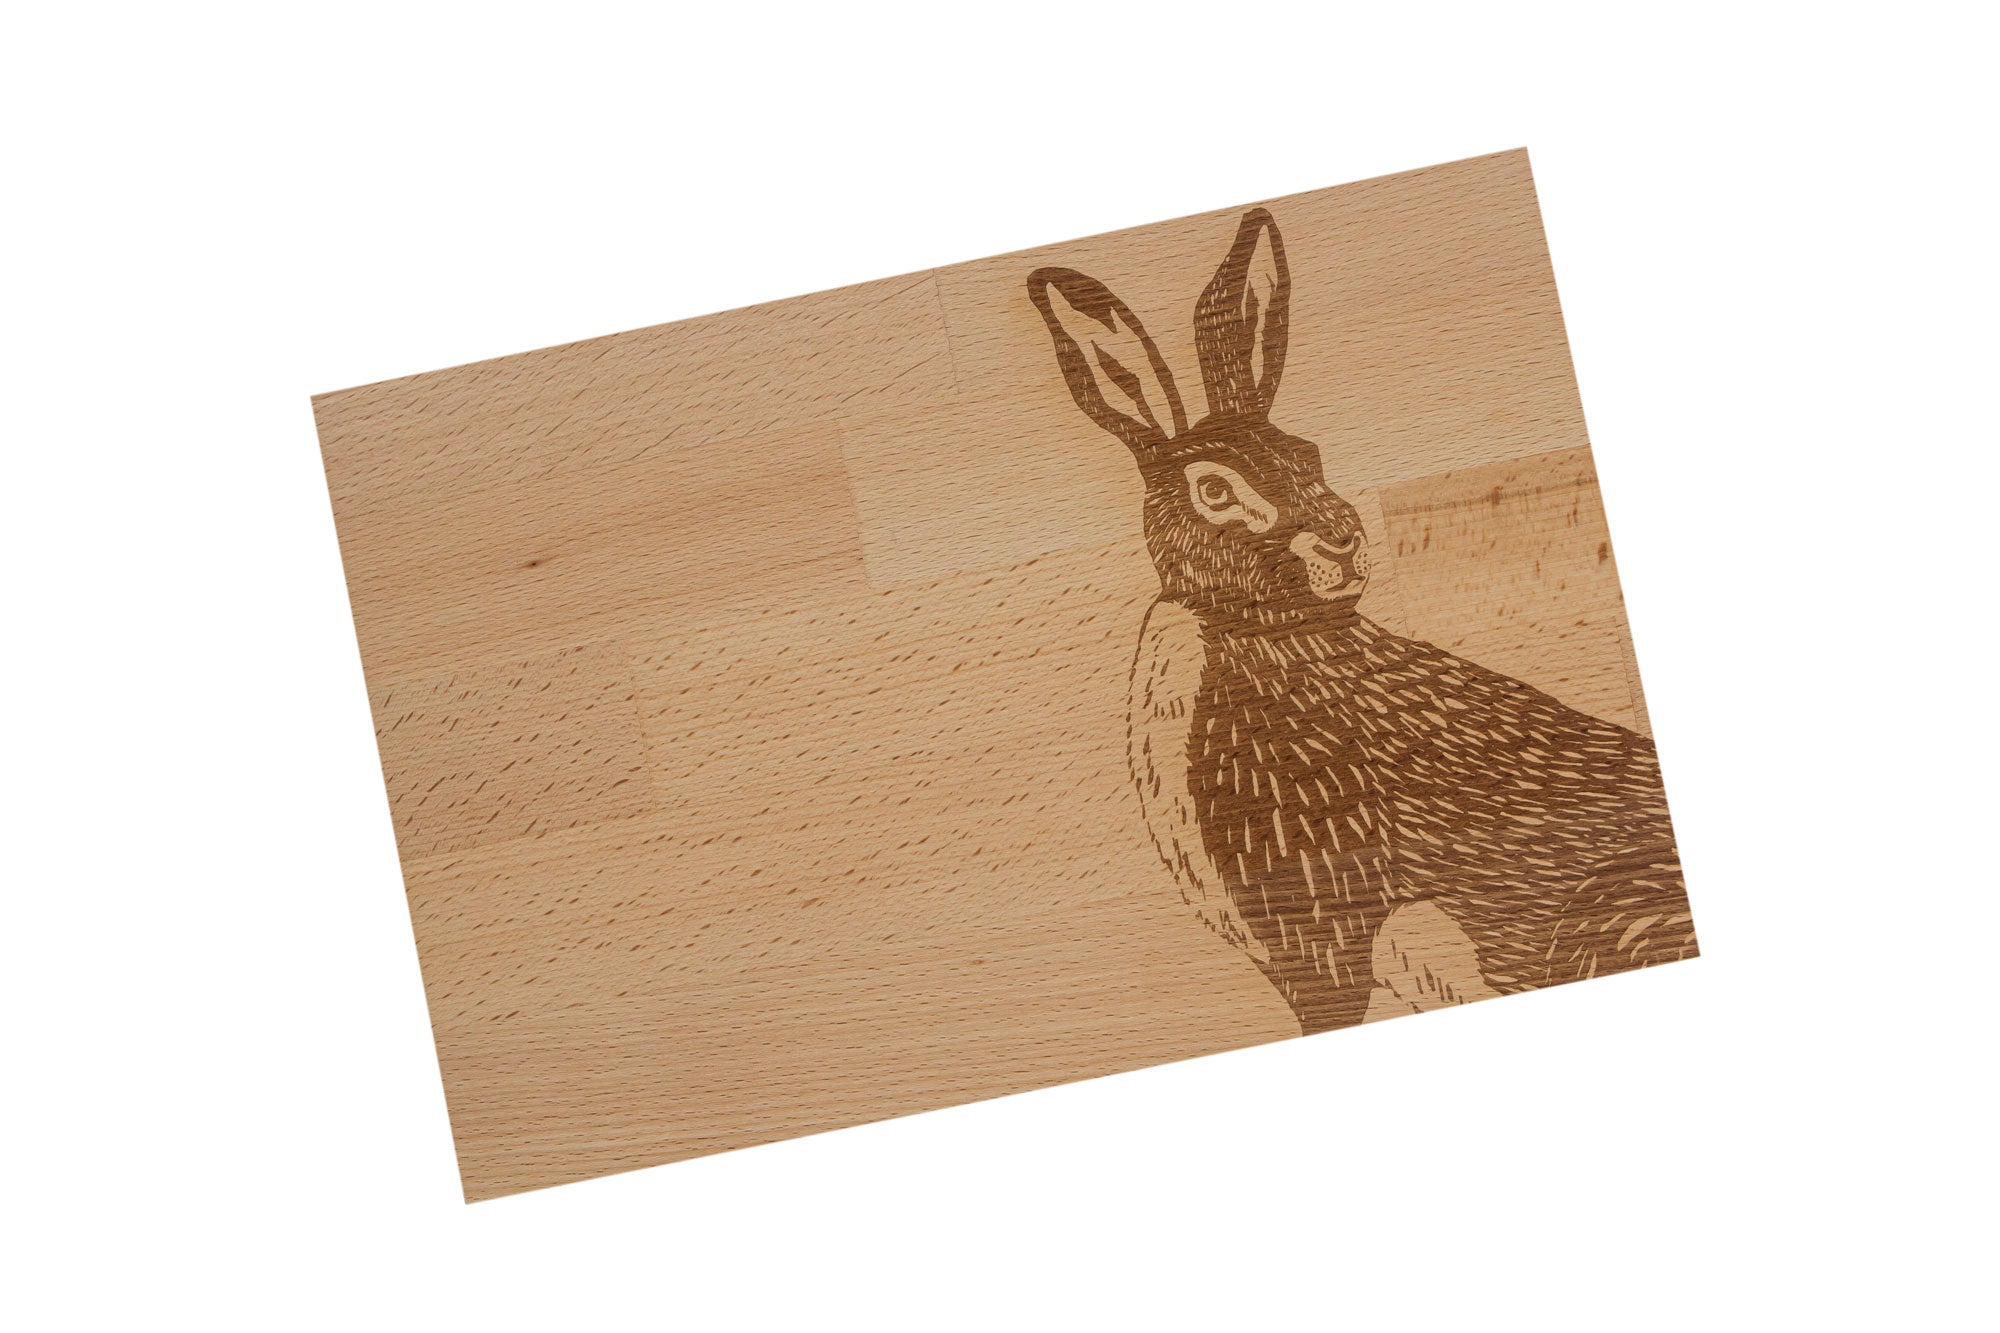 WILDER HARE chopping board designed by Perkins & Morley